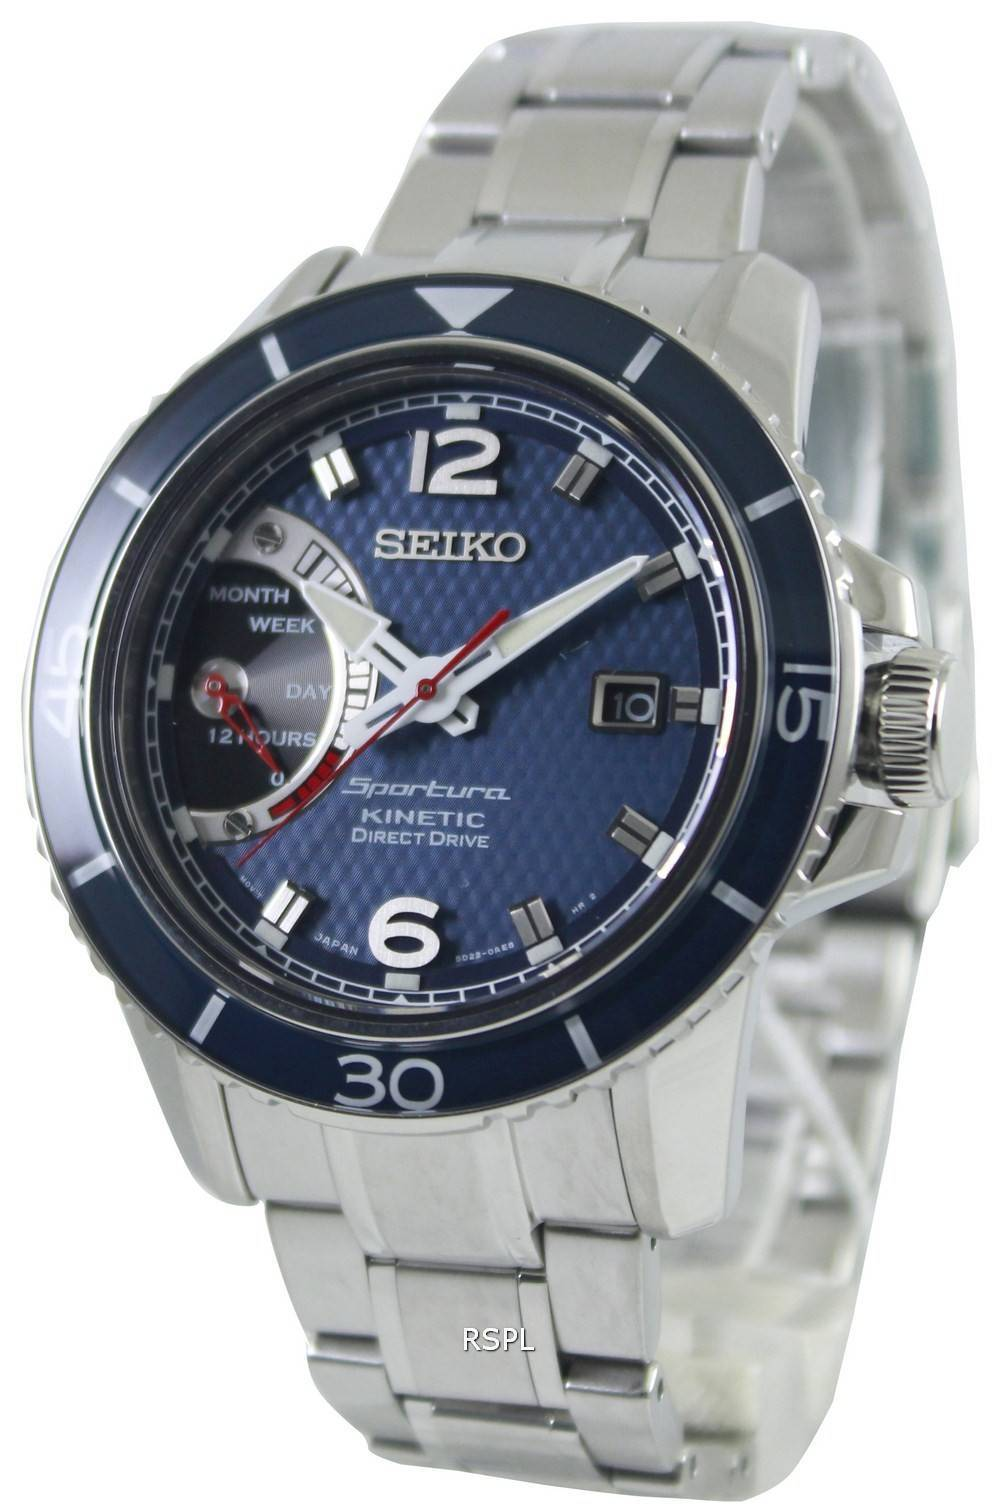 Seiko sportura kinetic direct drive srg017p1 srg017p mens watch singapore for Watches direct